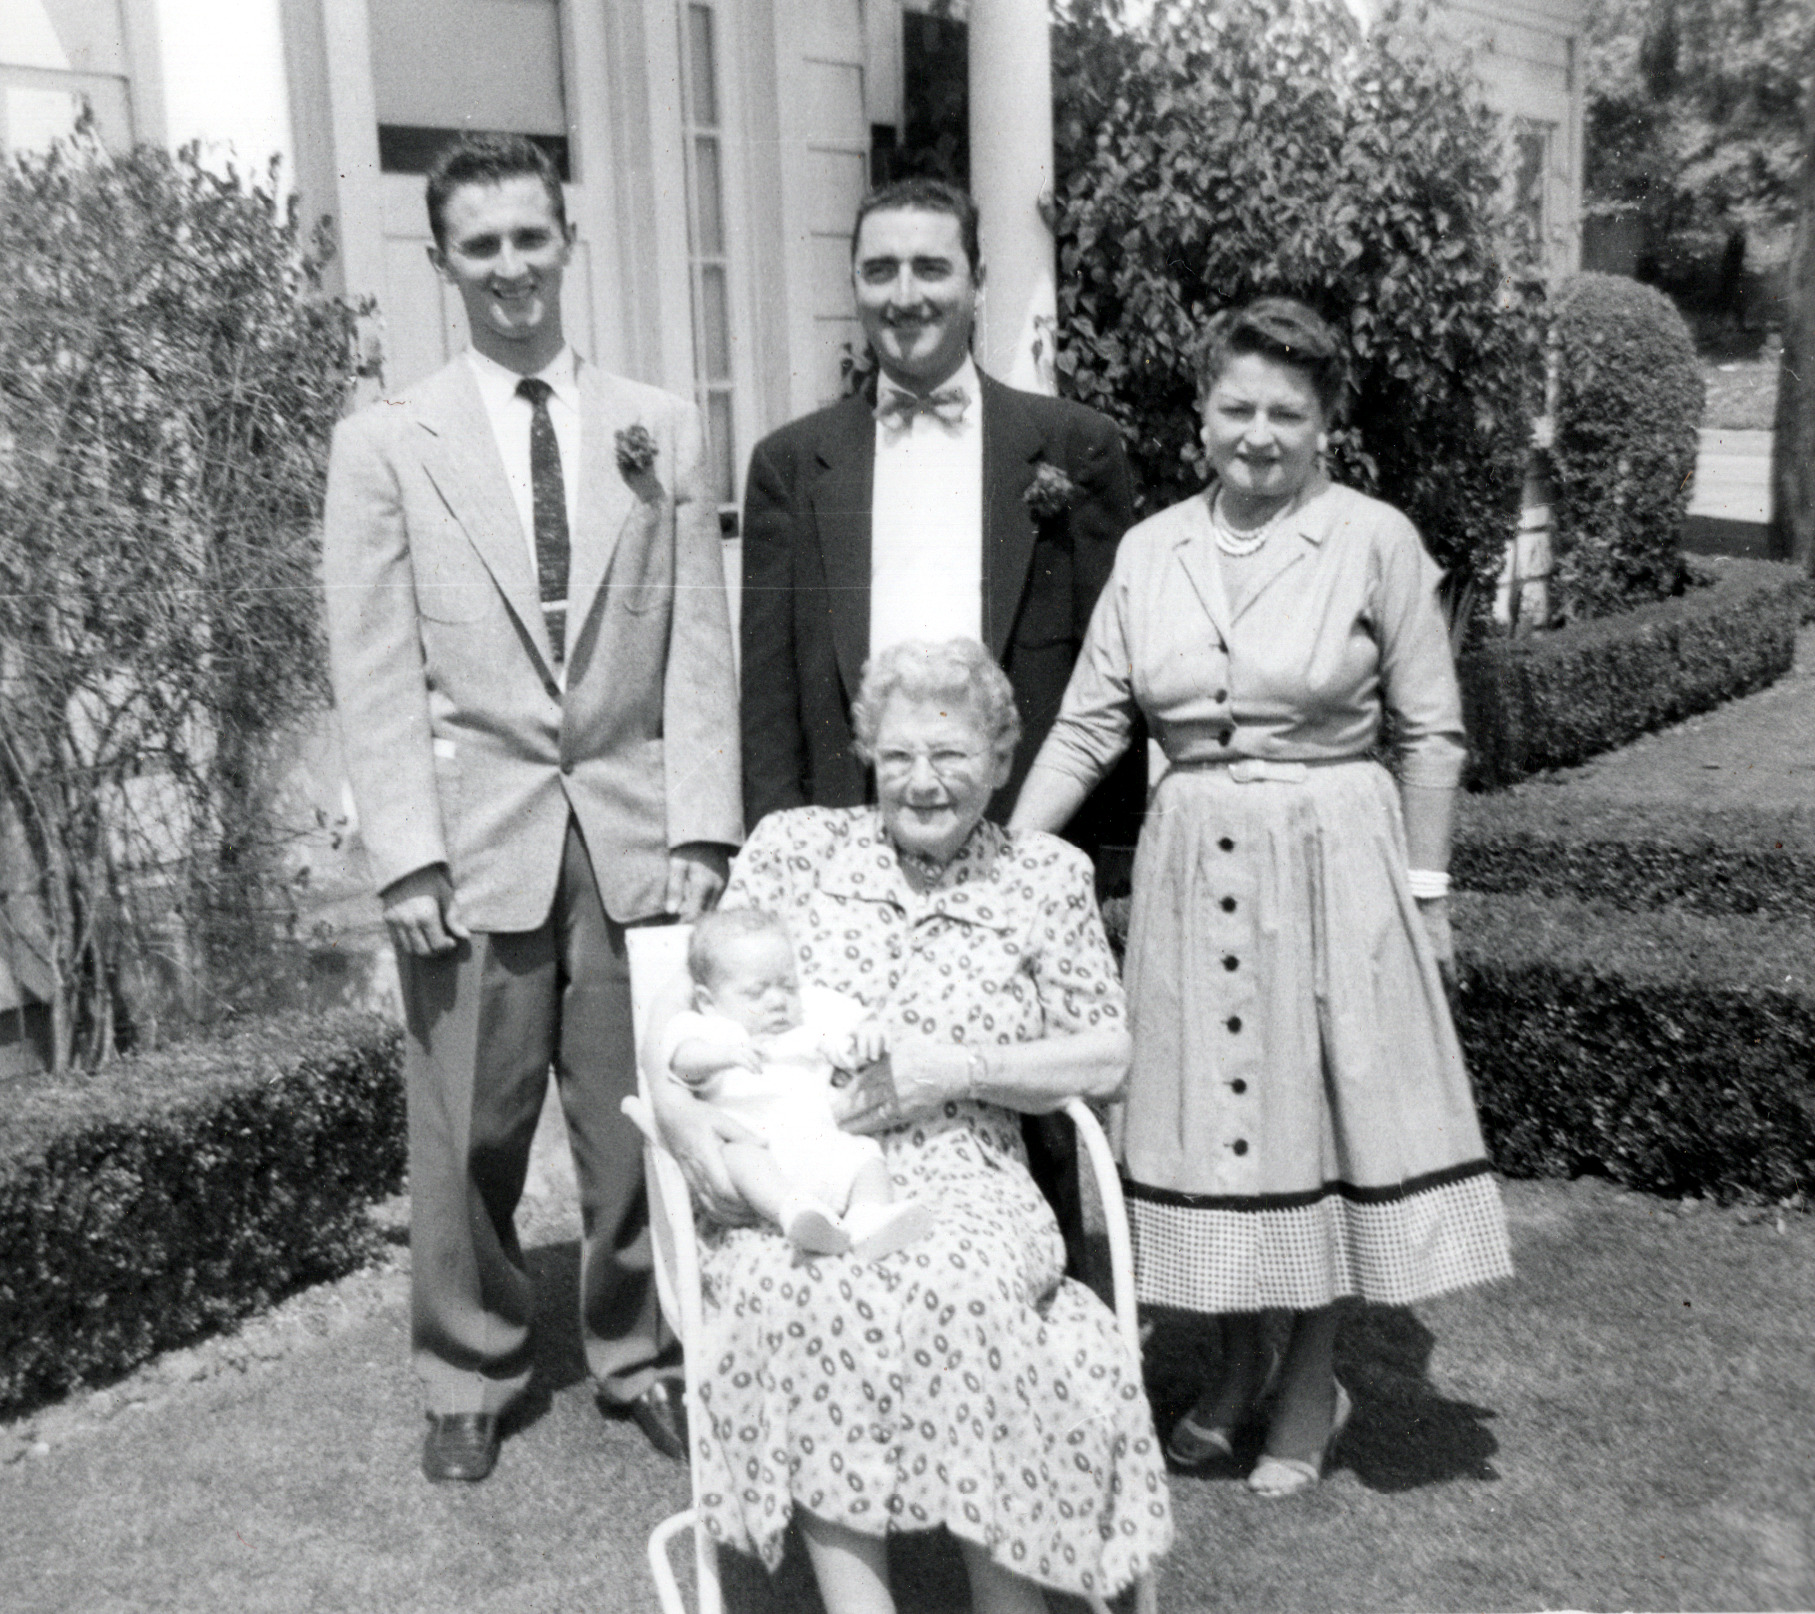 Buddy with Dad, Grandpa, Great Grandmother & Great Great Grandmother